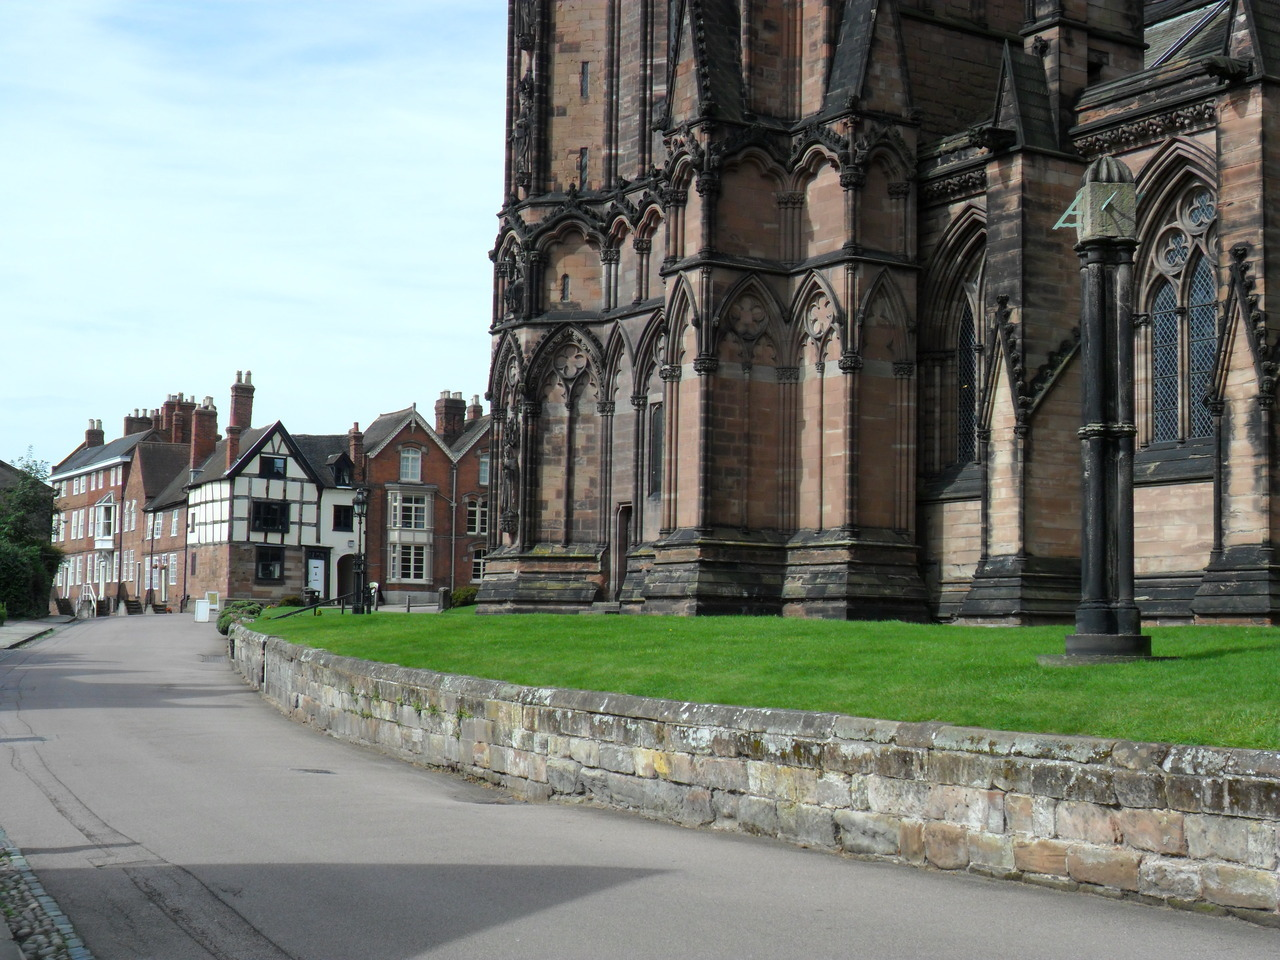 Lichfield Cathedral looking toward Erasmus Darwin's house, note the Sundial clock.